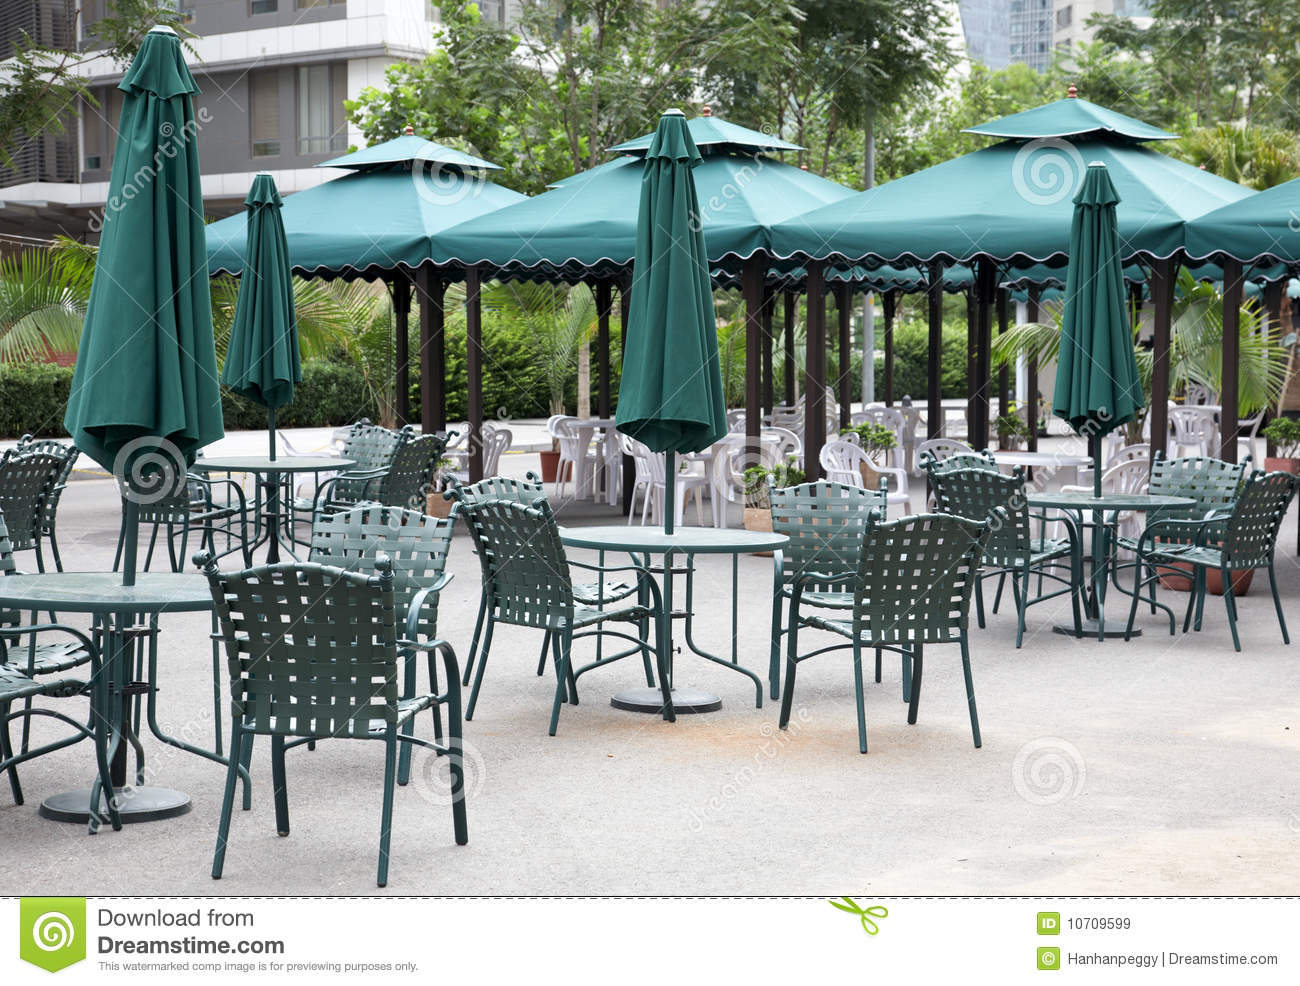 Outdoor Cafe Royalty Free Stock Images - Image: 10709599